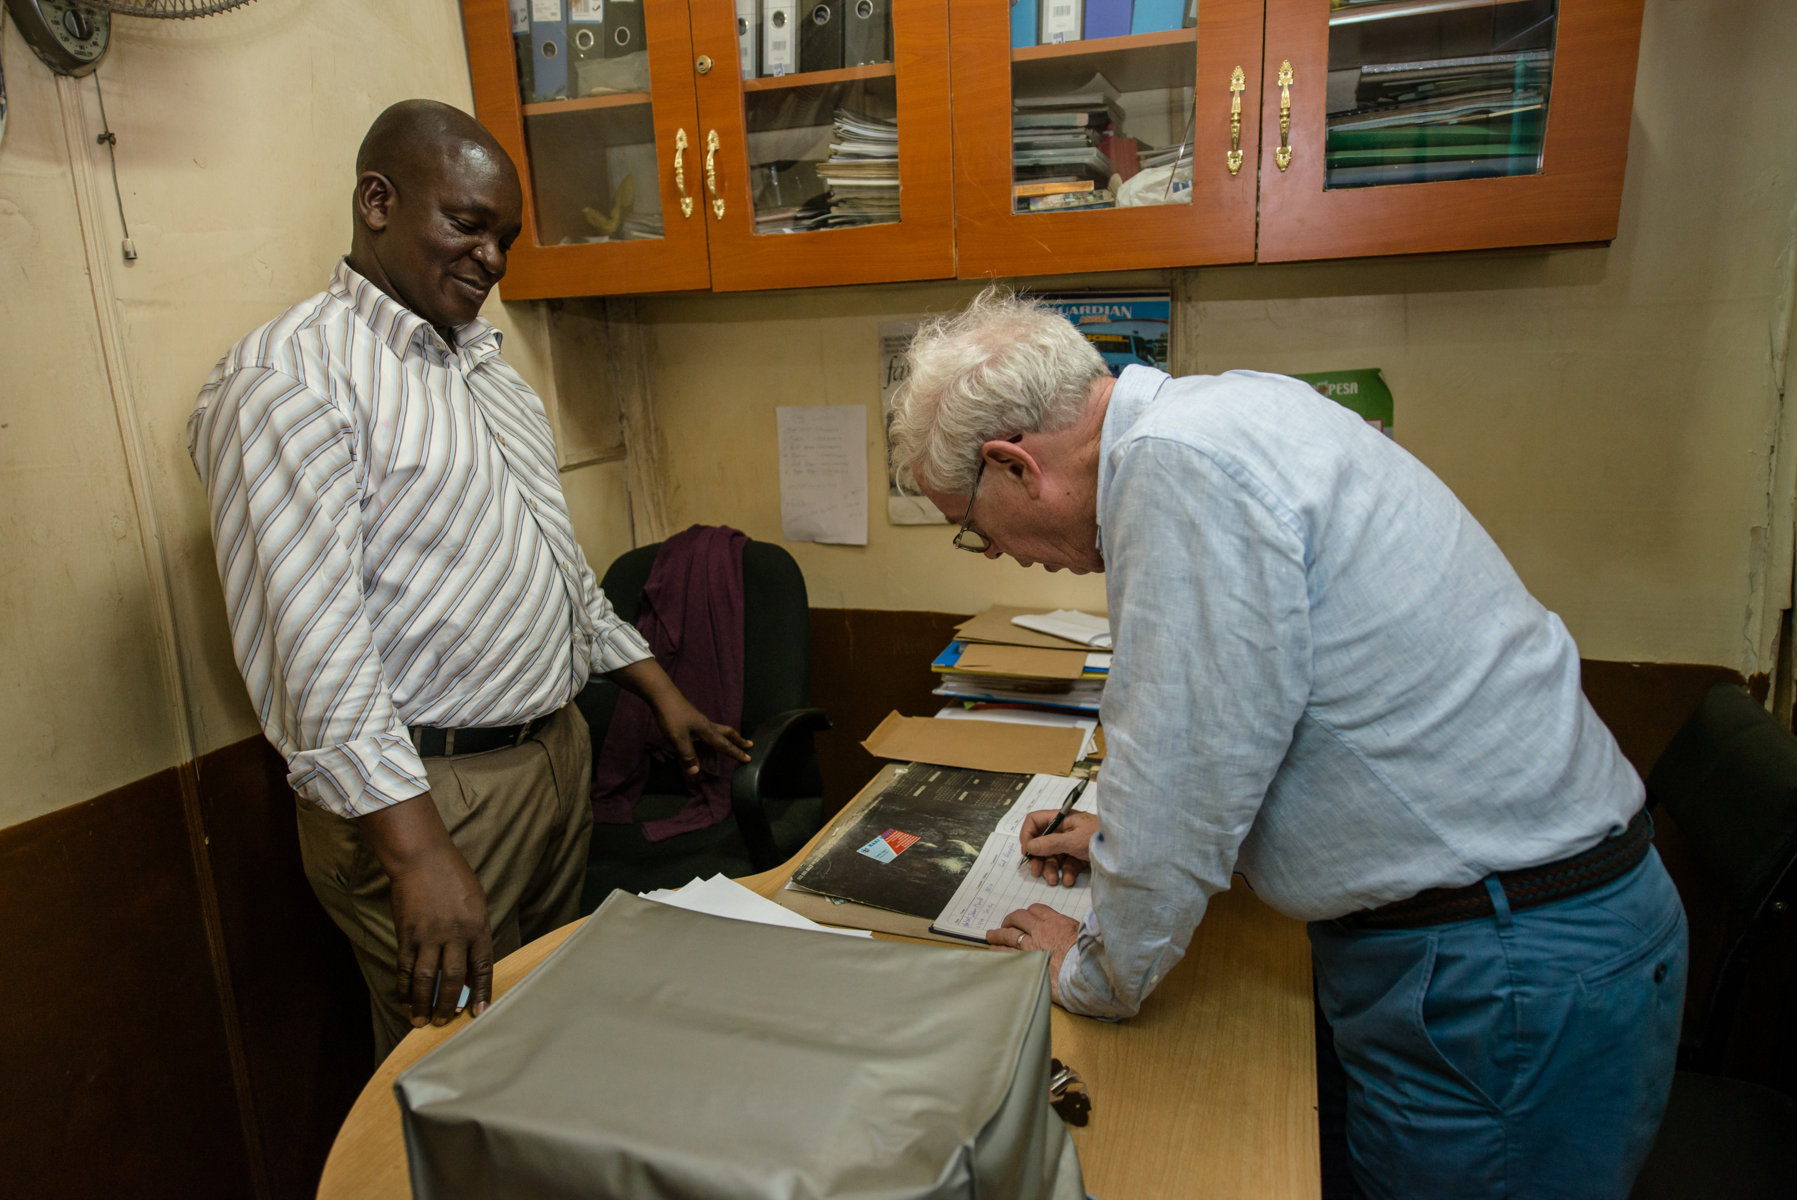 John Kay signs the visitors book at Haki Group offices as the Chief Executive Officer, Charles Ogutu looks on.